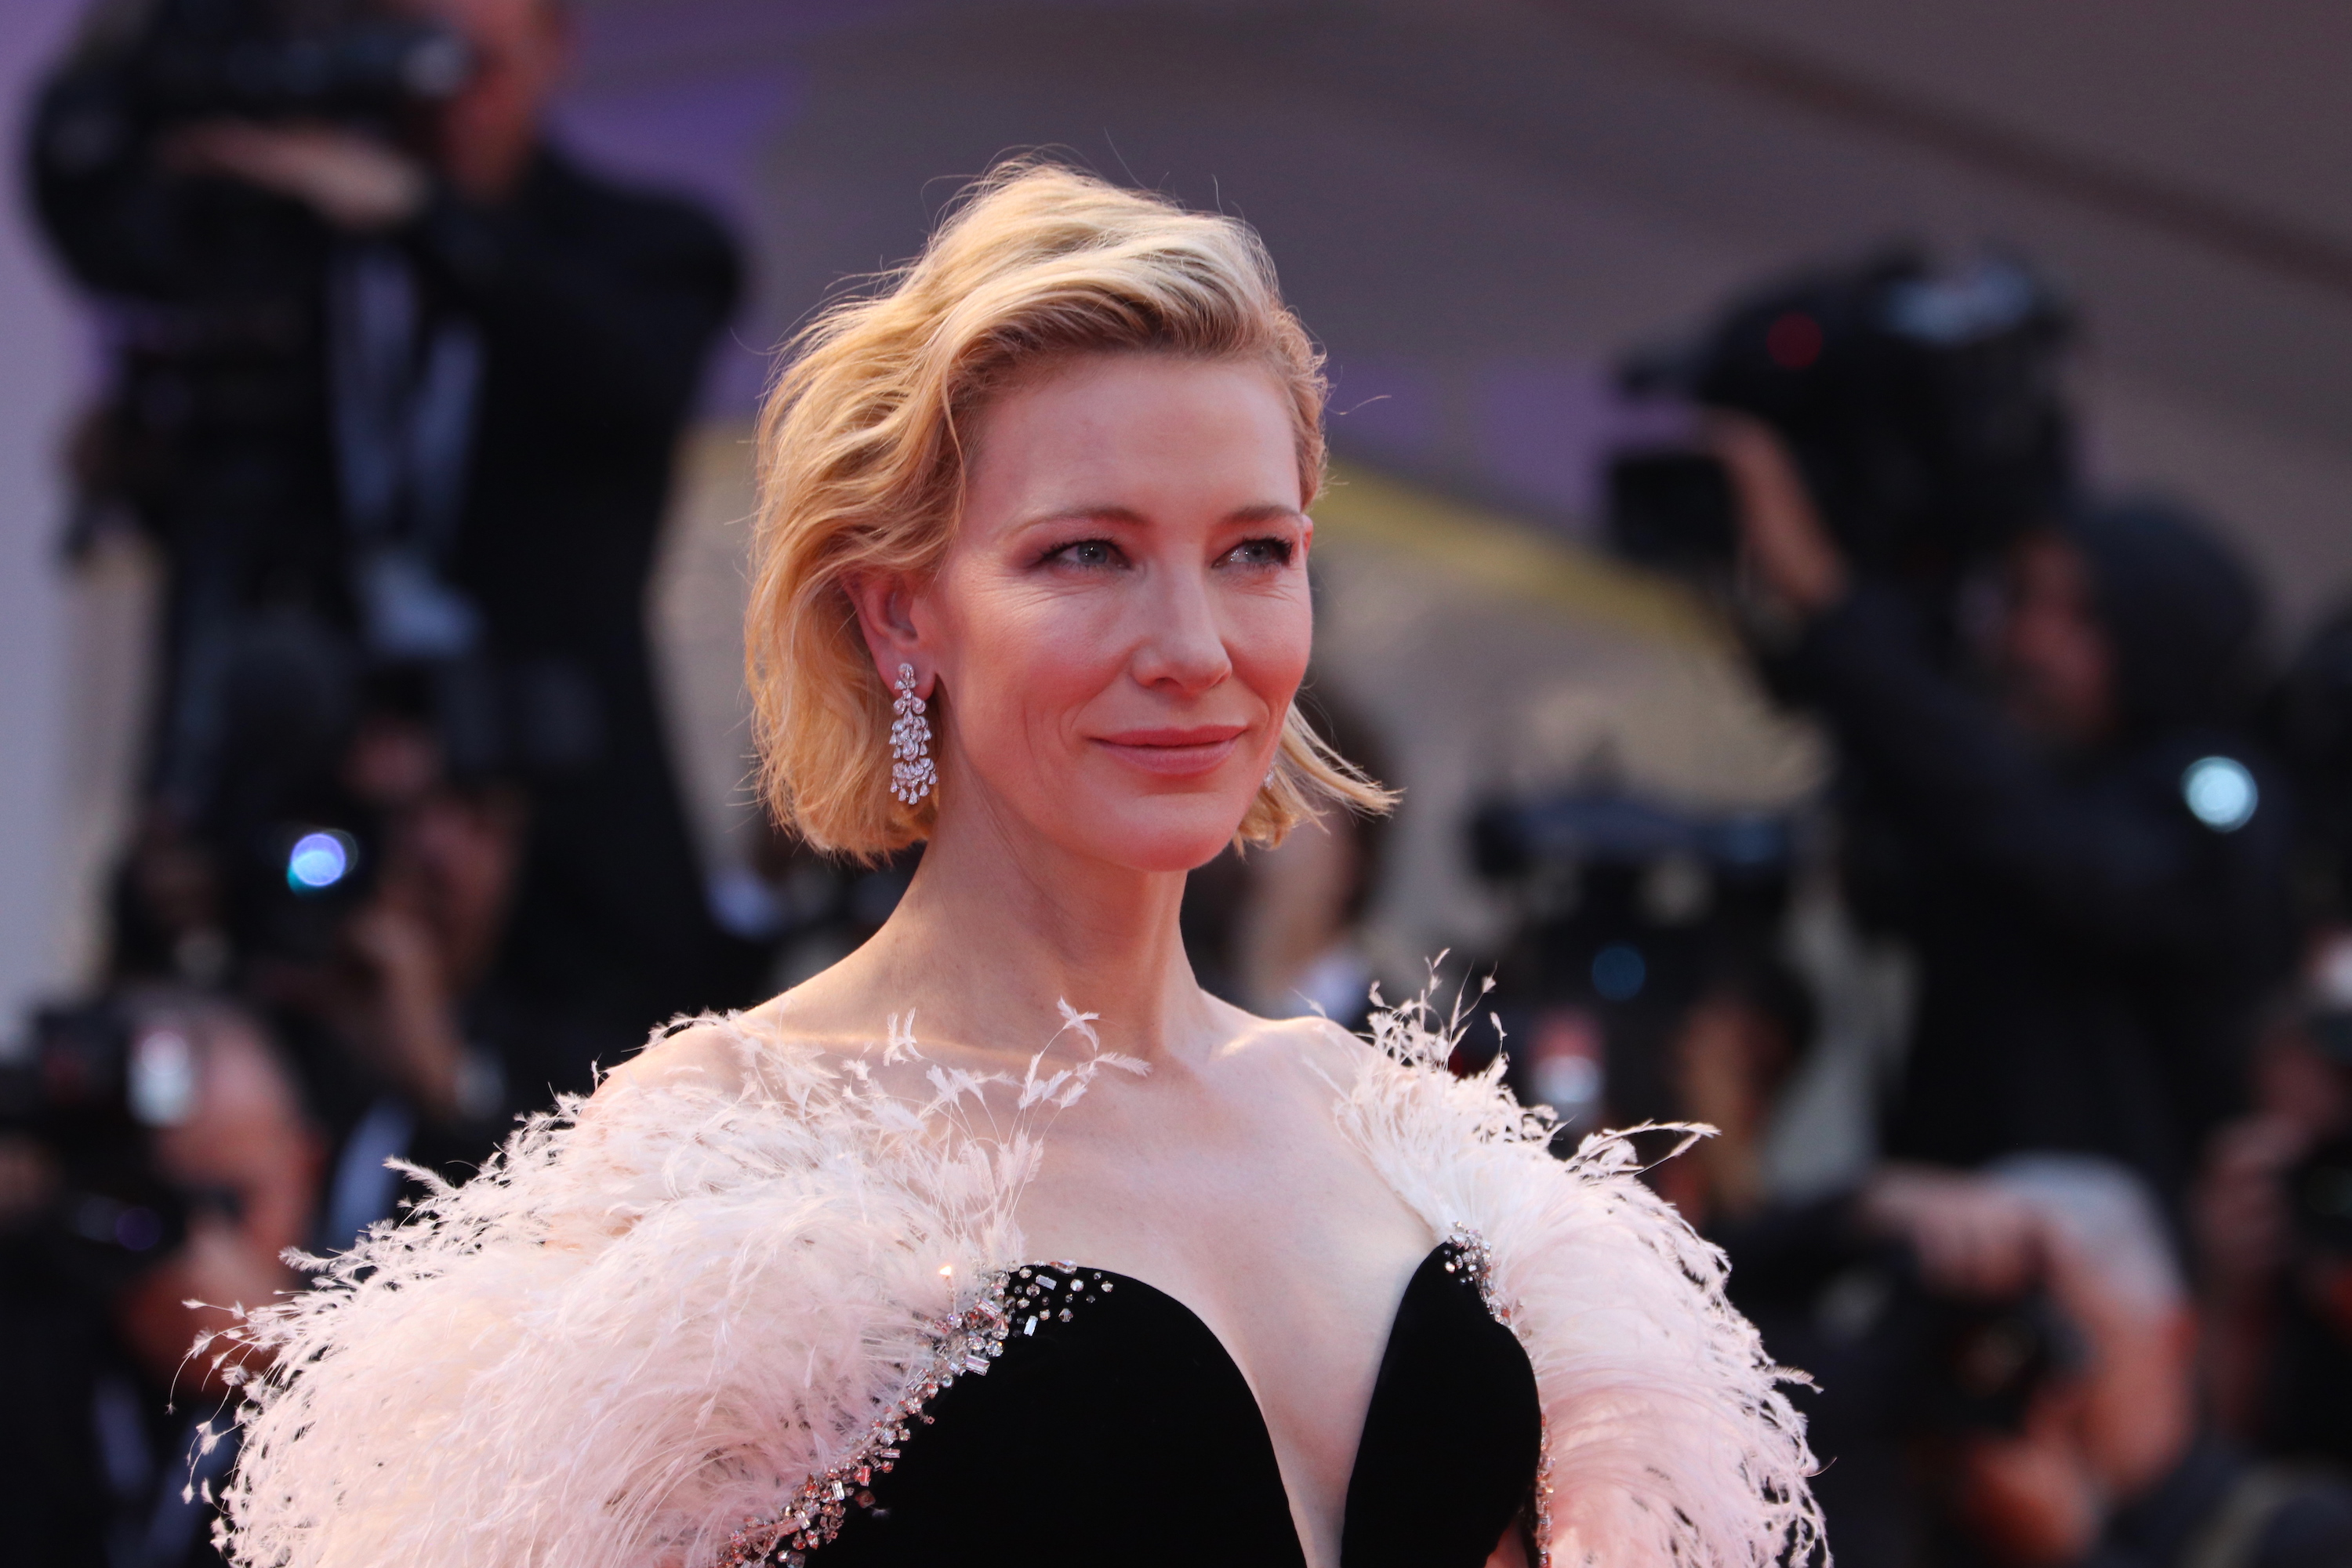 Venezia 2018: uno scatto di Cate Blanchett sul red carpet di A Star is Born